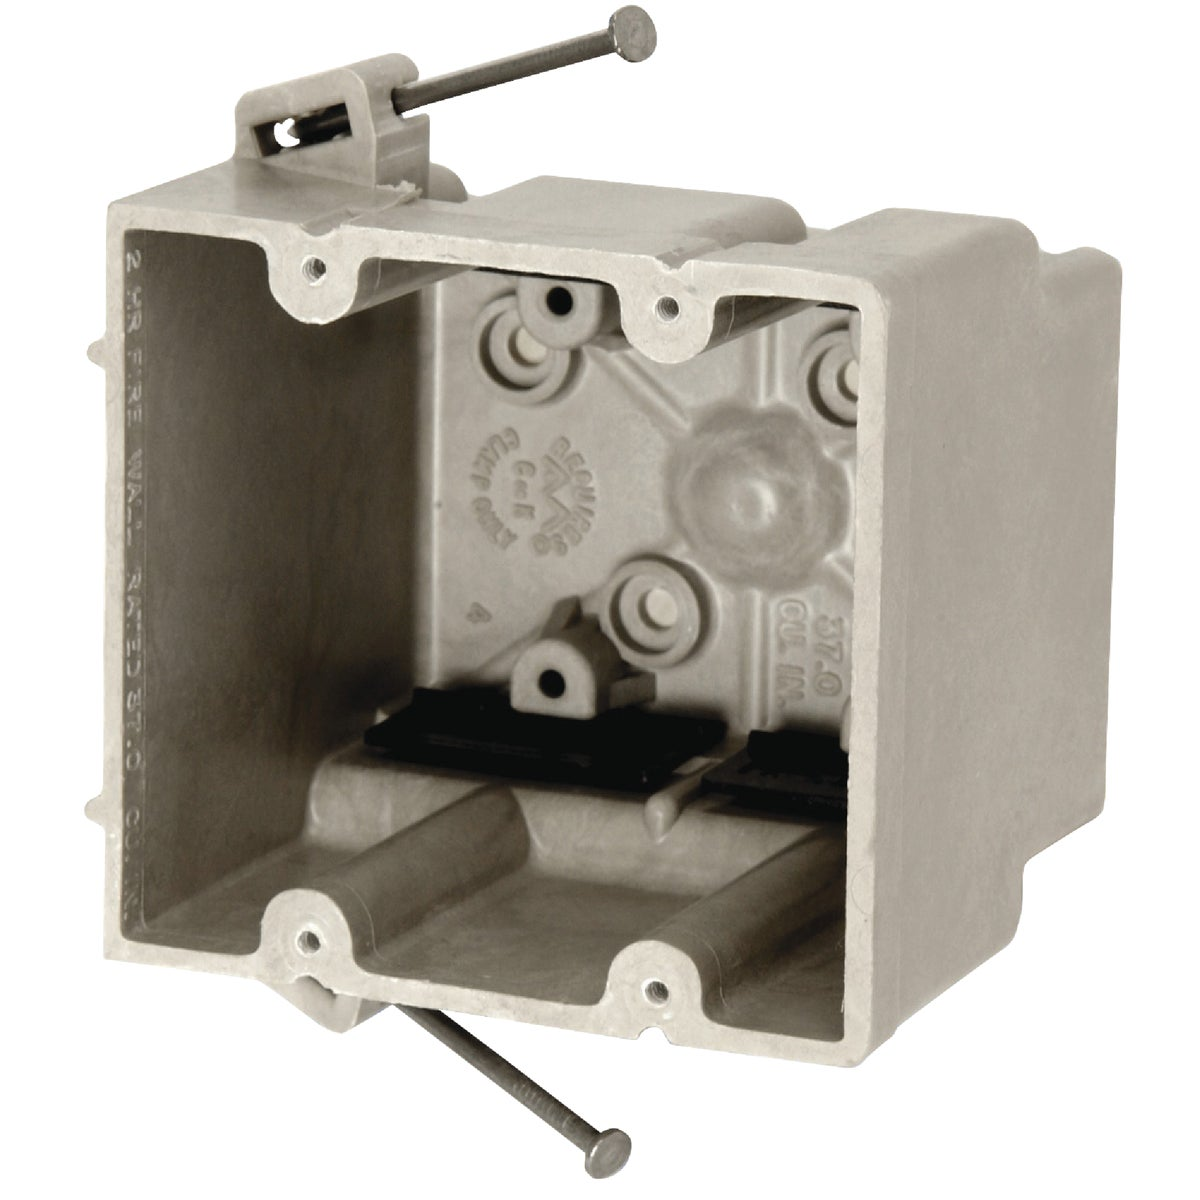 2 GANG SWITCH BOX - 2300-NK by Allied Moulded